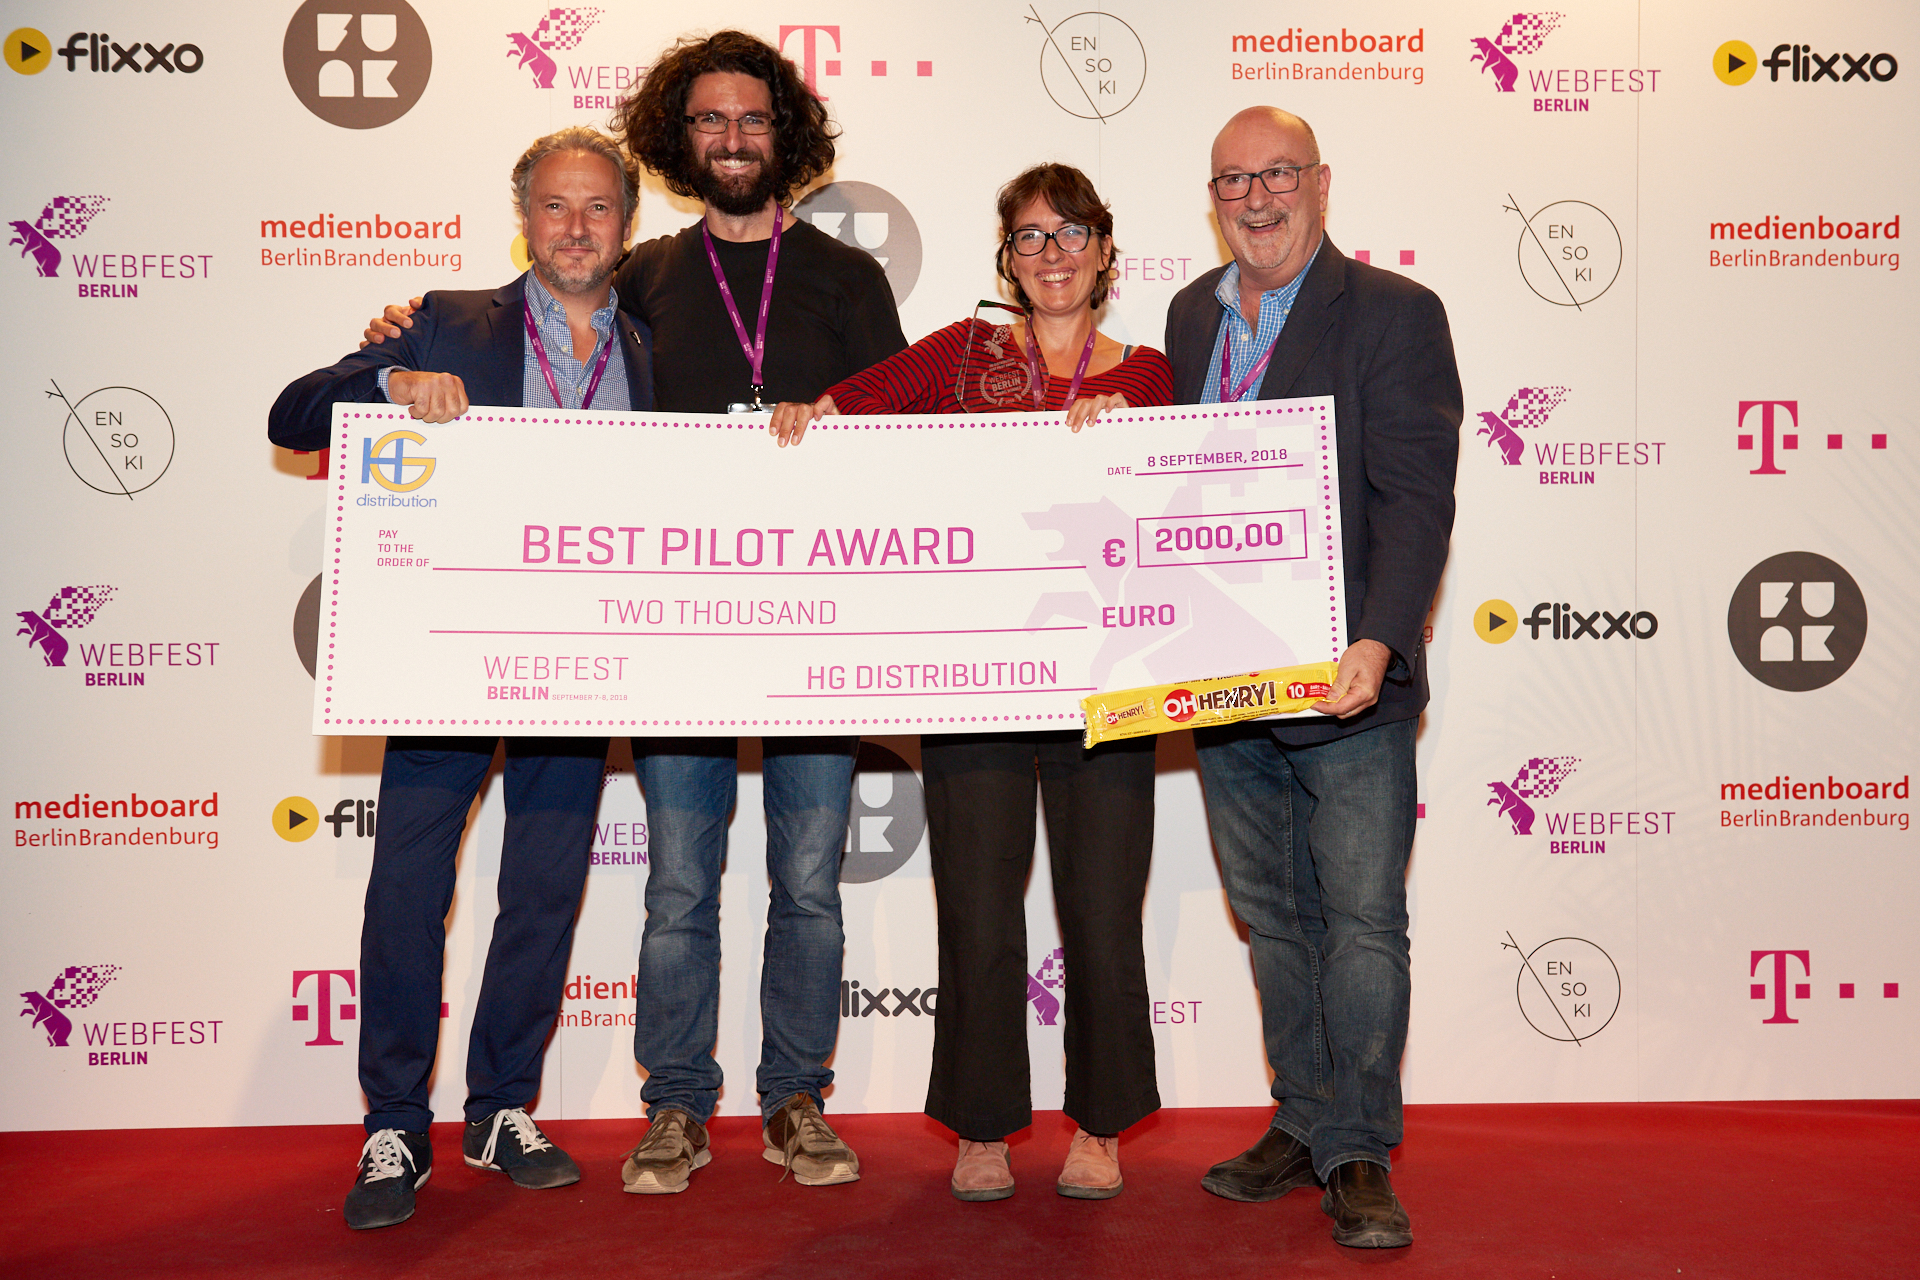 Best Pilot Award Winner - Twinky Doo's Magic World (IT) (L to R) Bernd Korz of Alugha, Alessandro Izzo (Writer/Director), Francesca Detti (Writer/Producer), Henry Gagnon of HG Distribution